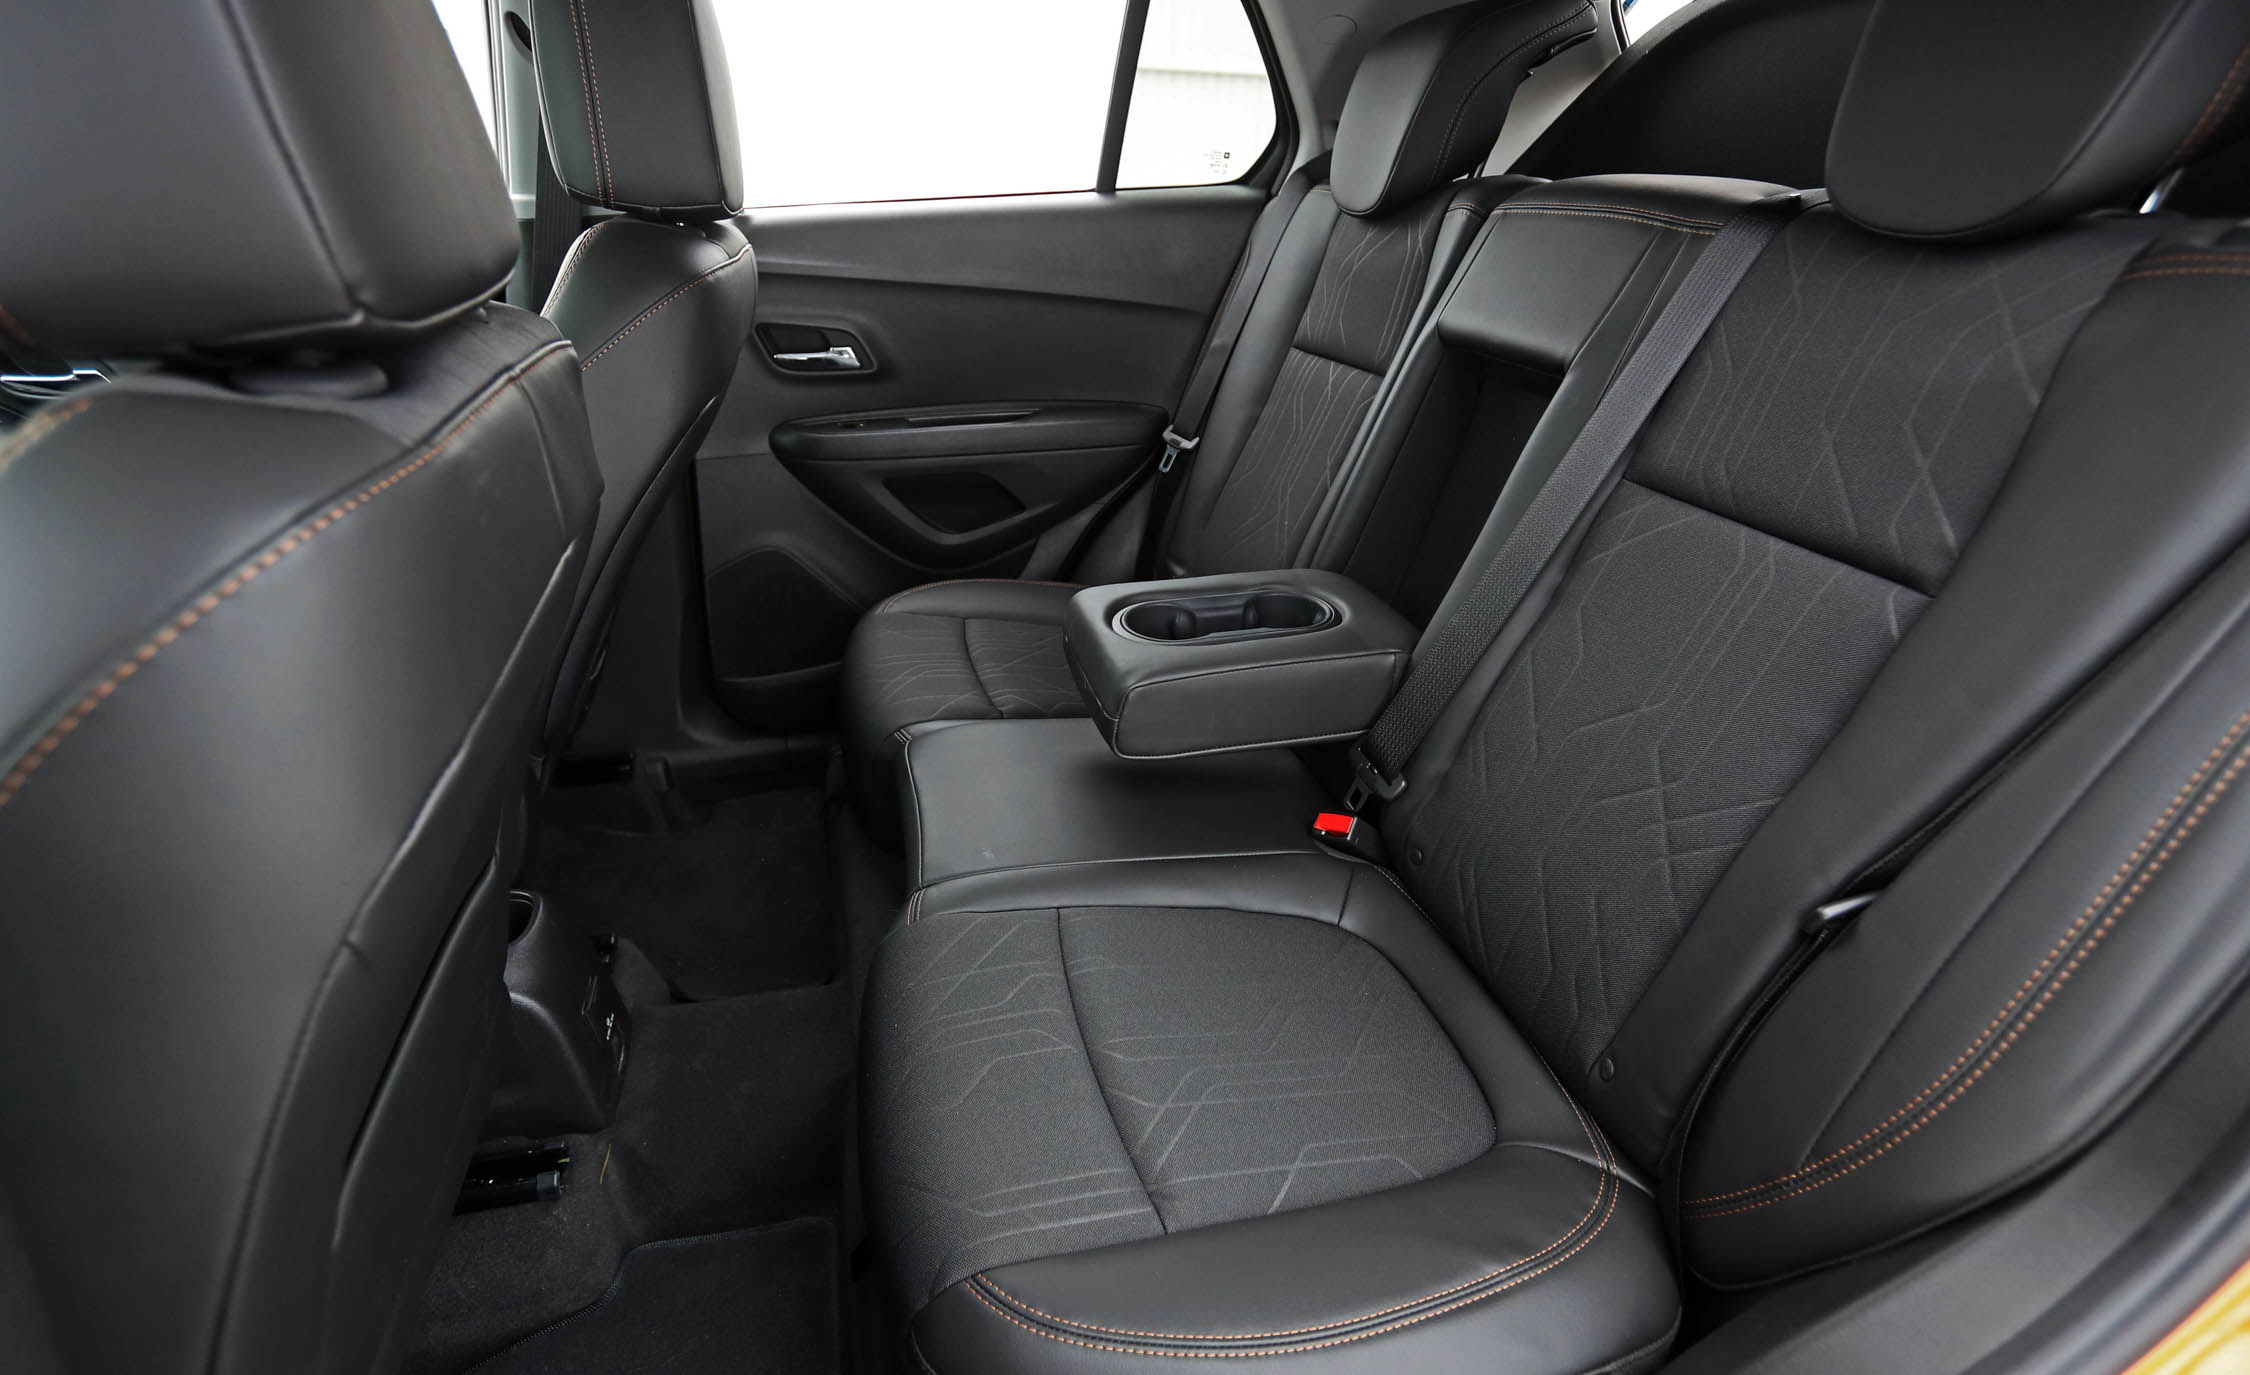 2017 Chevrolet Trax Interior Seats Rear (Photo 21 of 47)